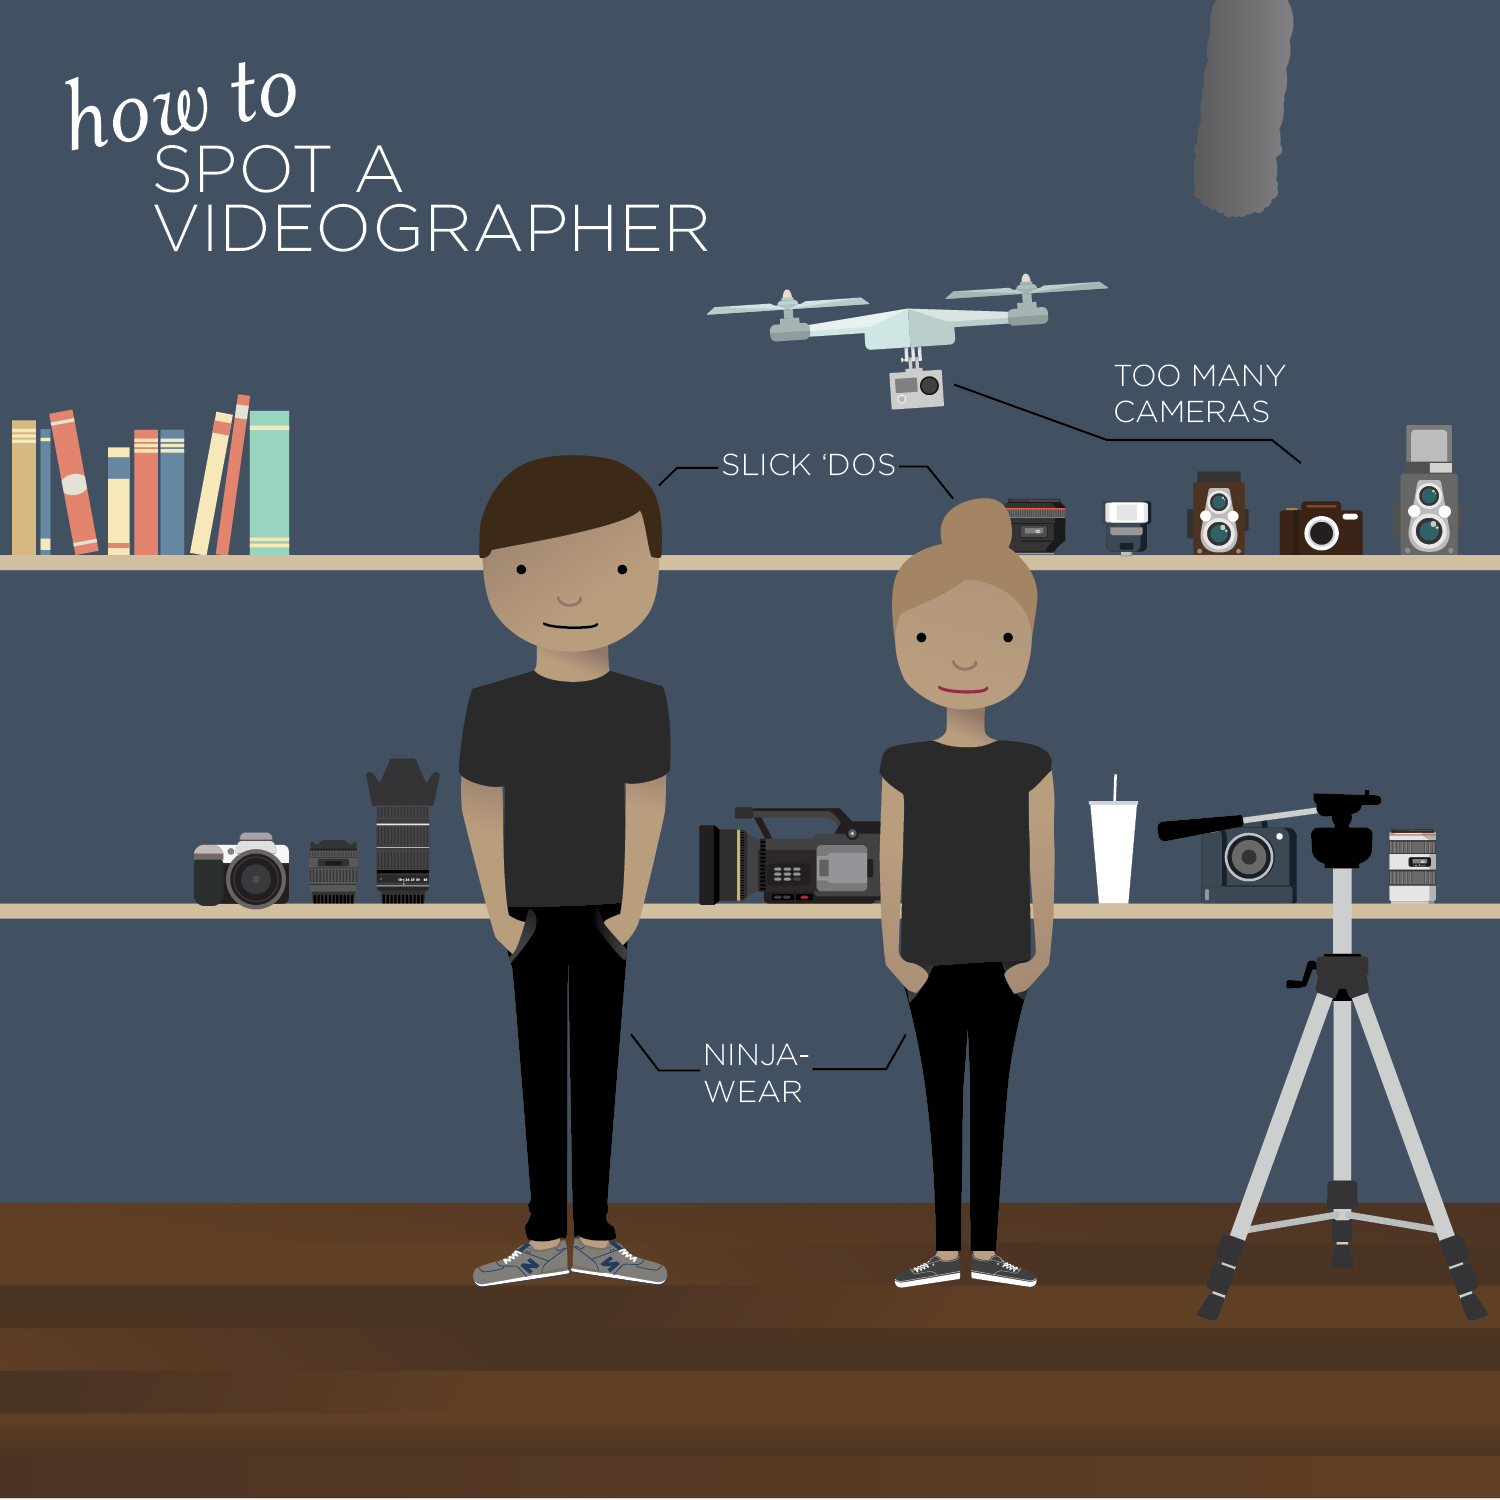 Illustration of two videographers in a studio